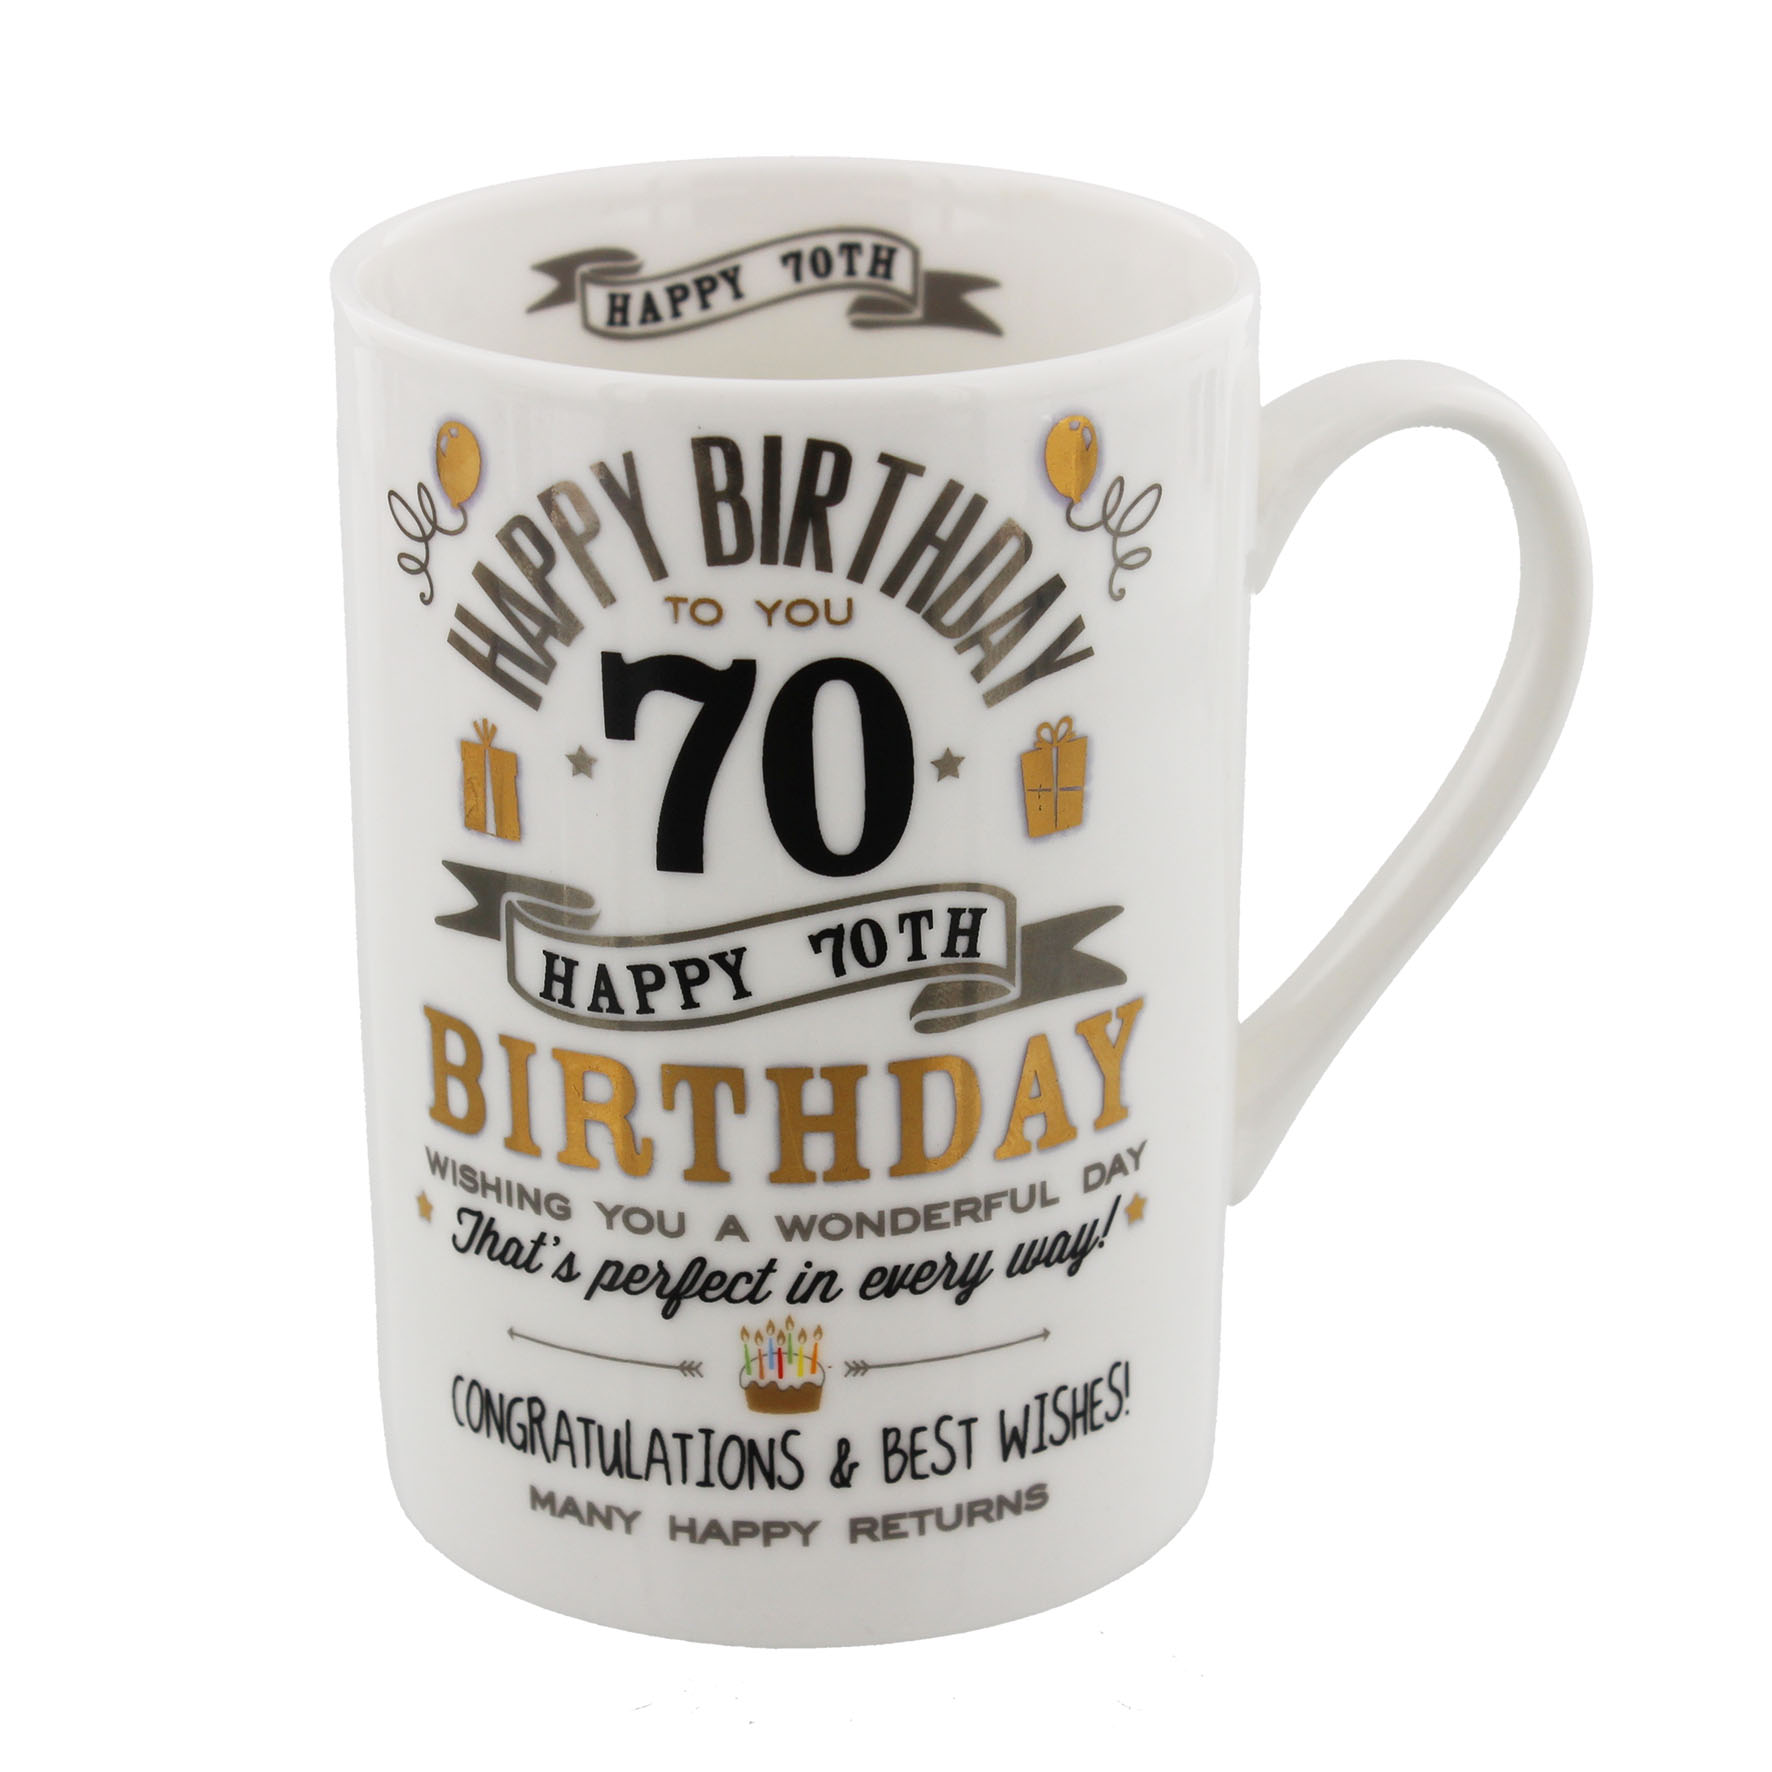 70TH BIRTHDAY MUG BLACKGOLD